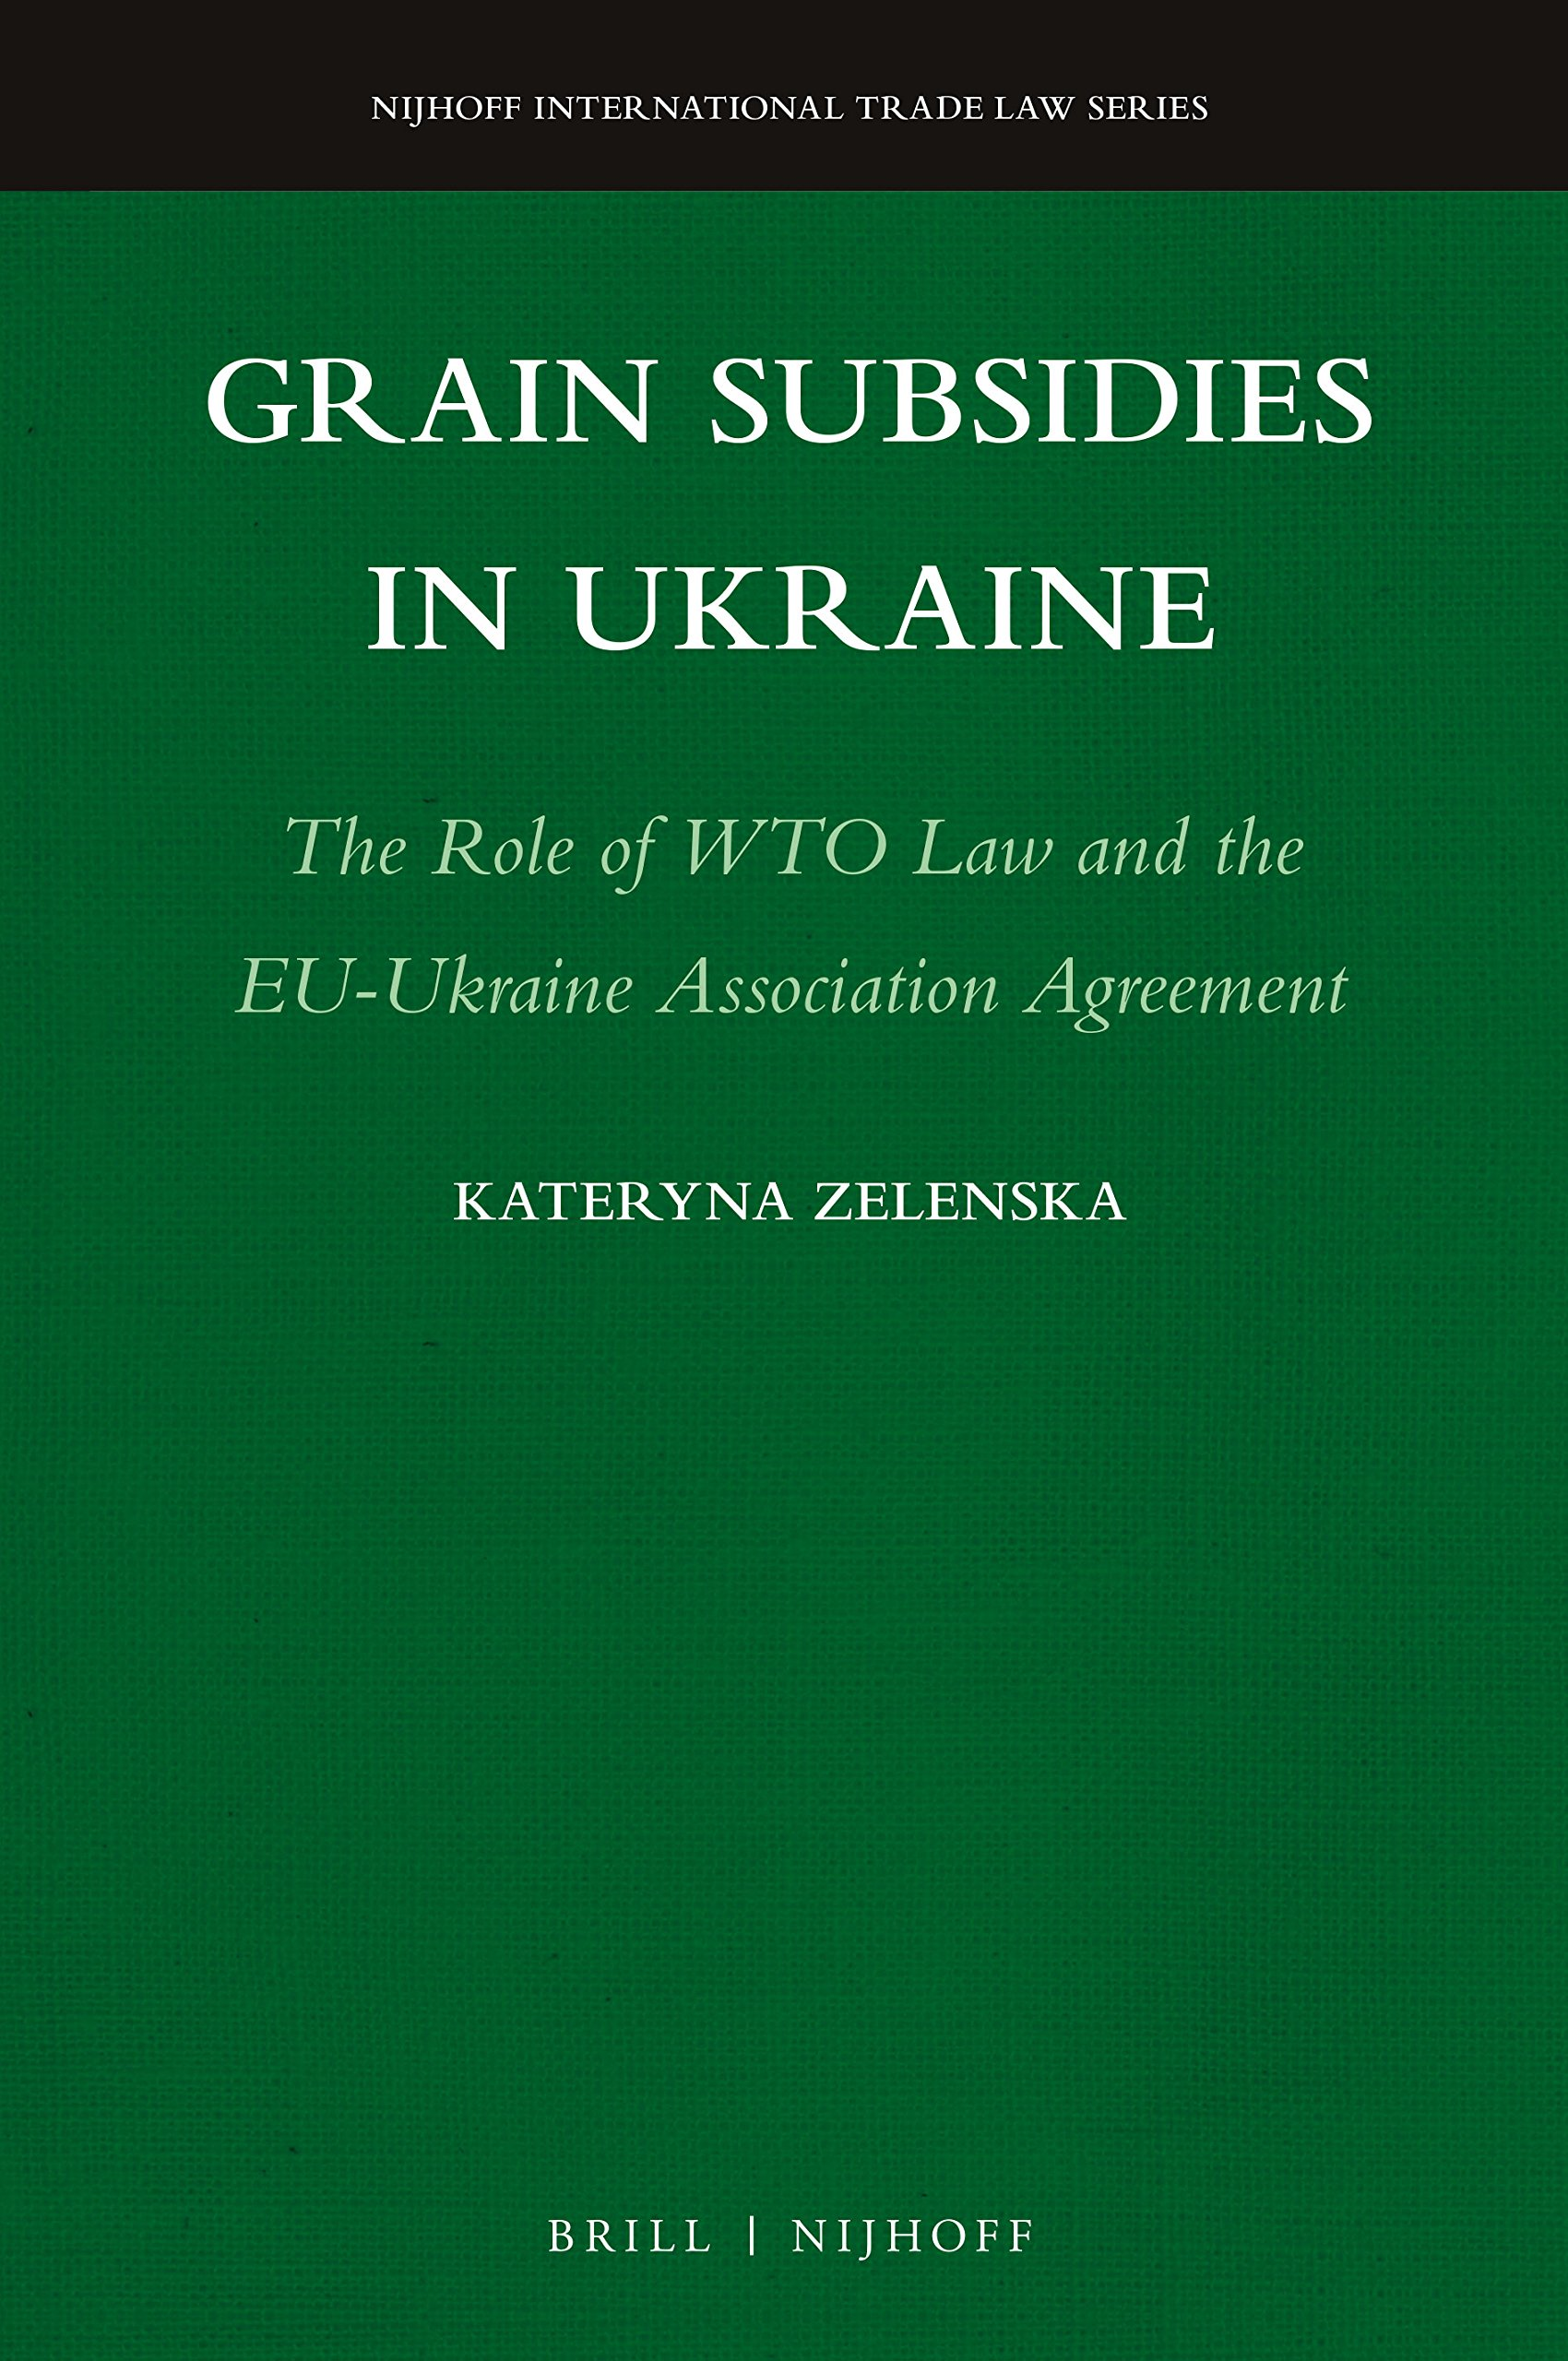 Buy Grain Subsidies In Ukraine The Role Of Wto Law And The Eu